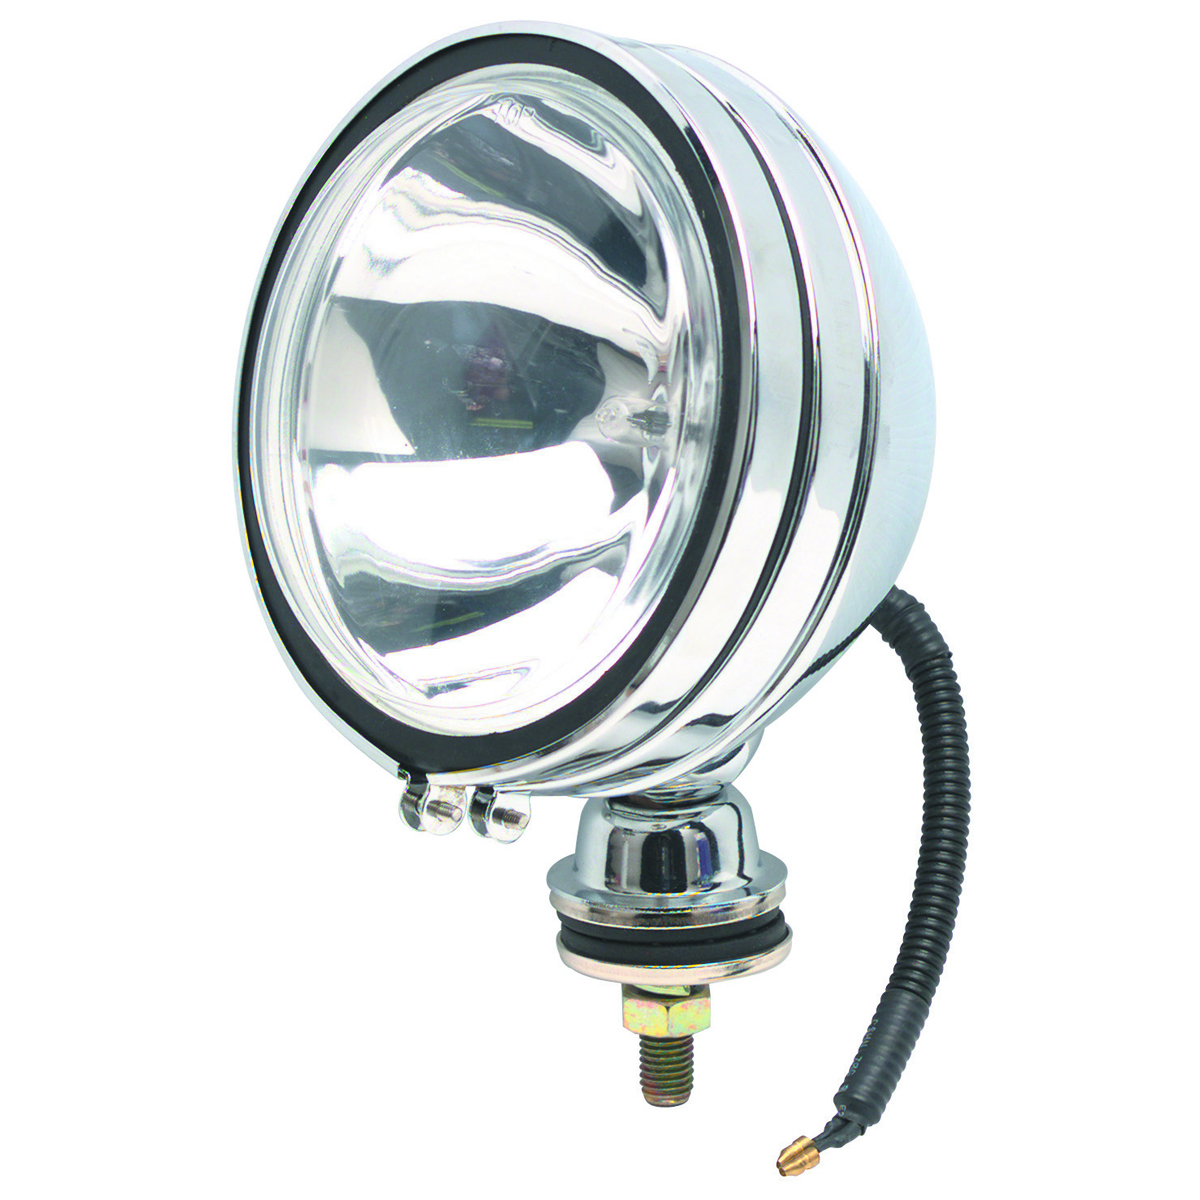 "Shop Lights At Harbor Freight: 6"" Off-Road Light System"